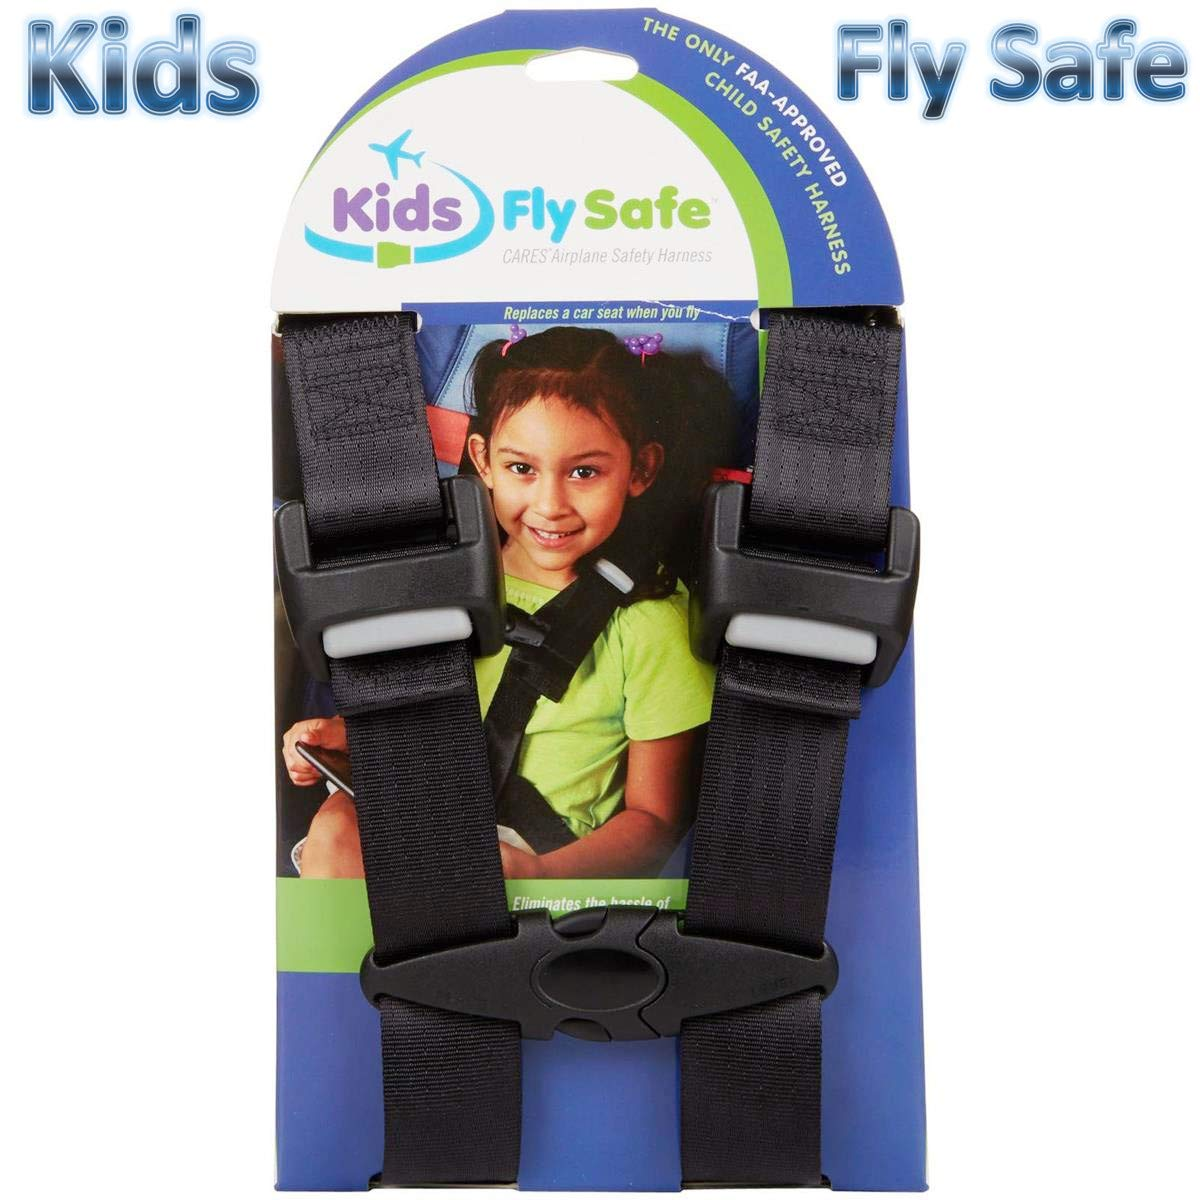 Child Safety Harness Airplane Travel Clip Strap.The Travel Harness Safety System Will Protect Your Child from Dangerous.Had Passed FAA Approved. (Amazon Certification)